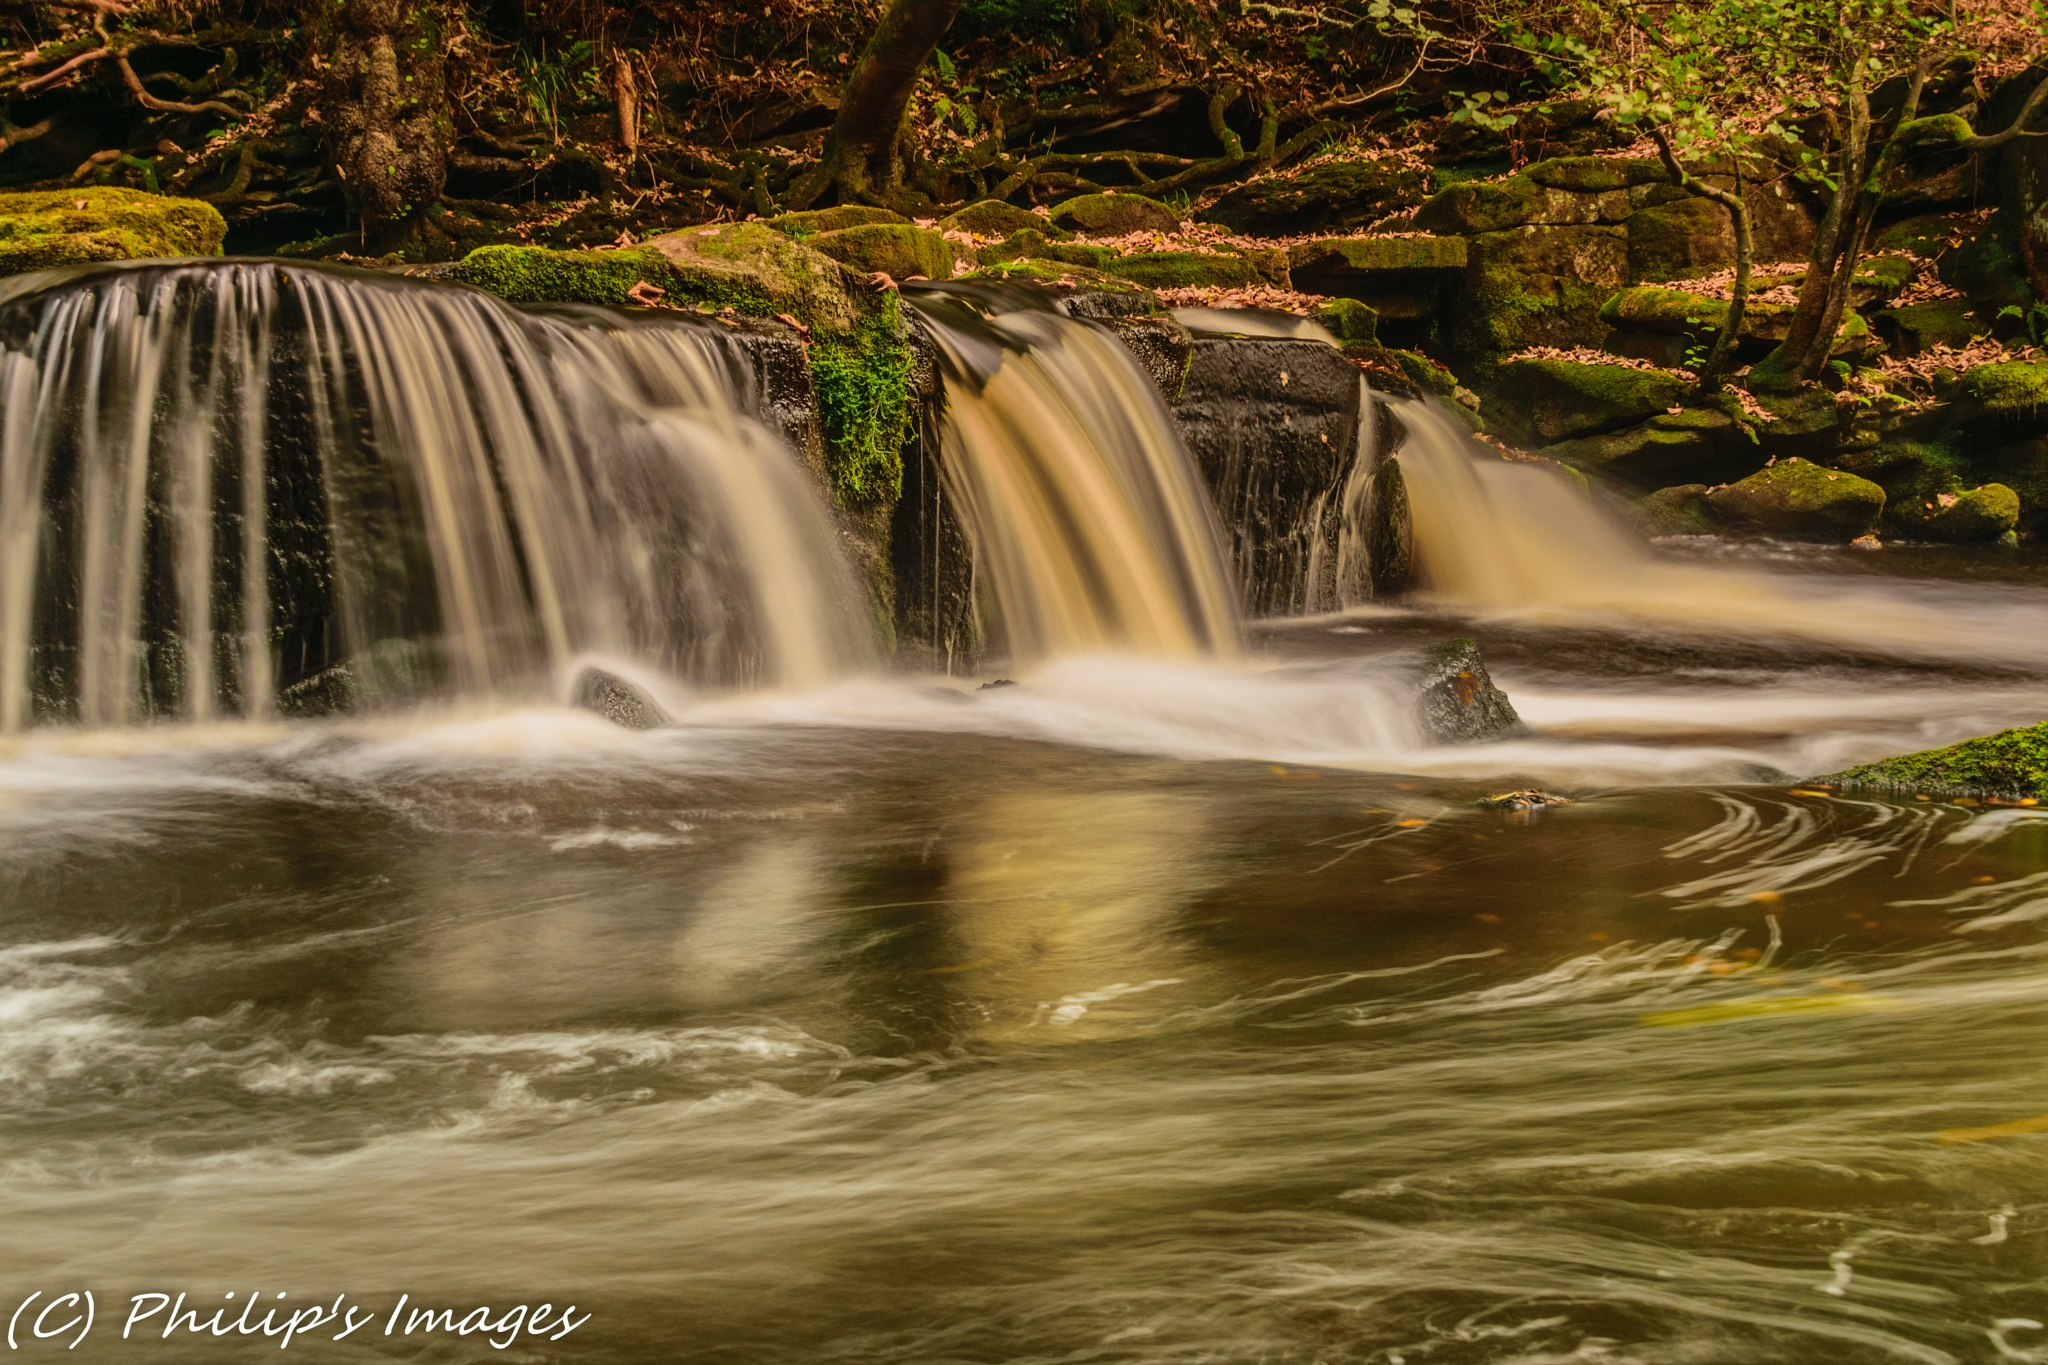 WATERFALL by philips images